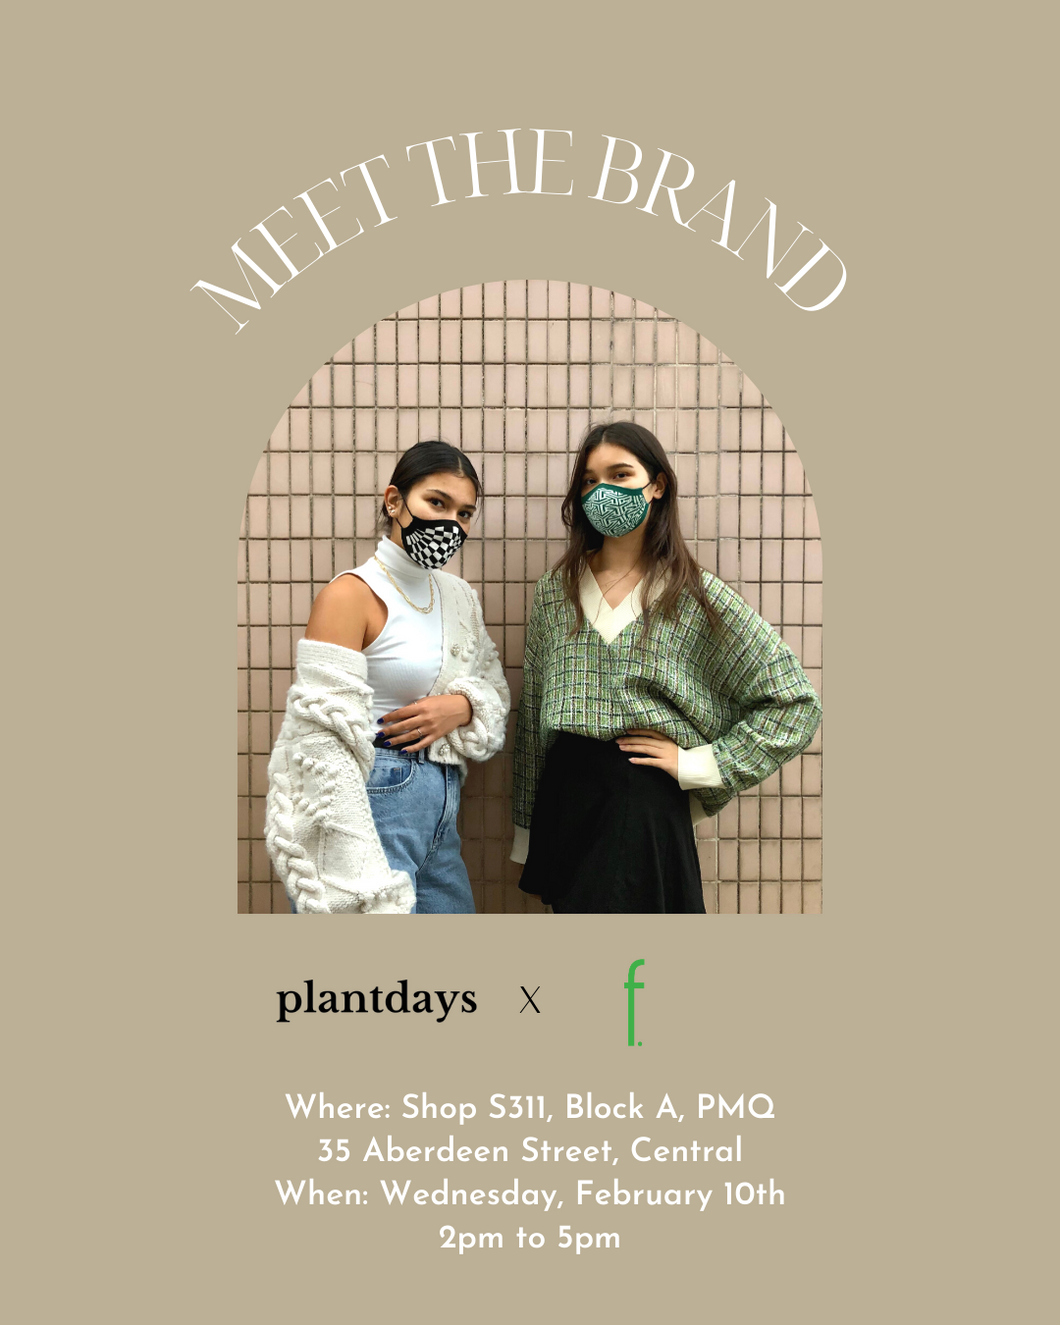 Meet The Brand x feat.FASHION